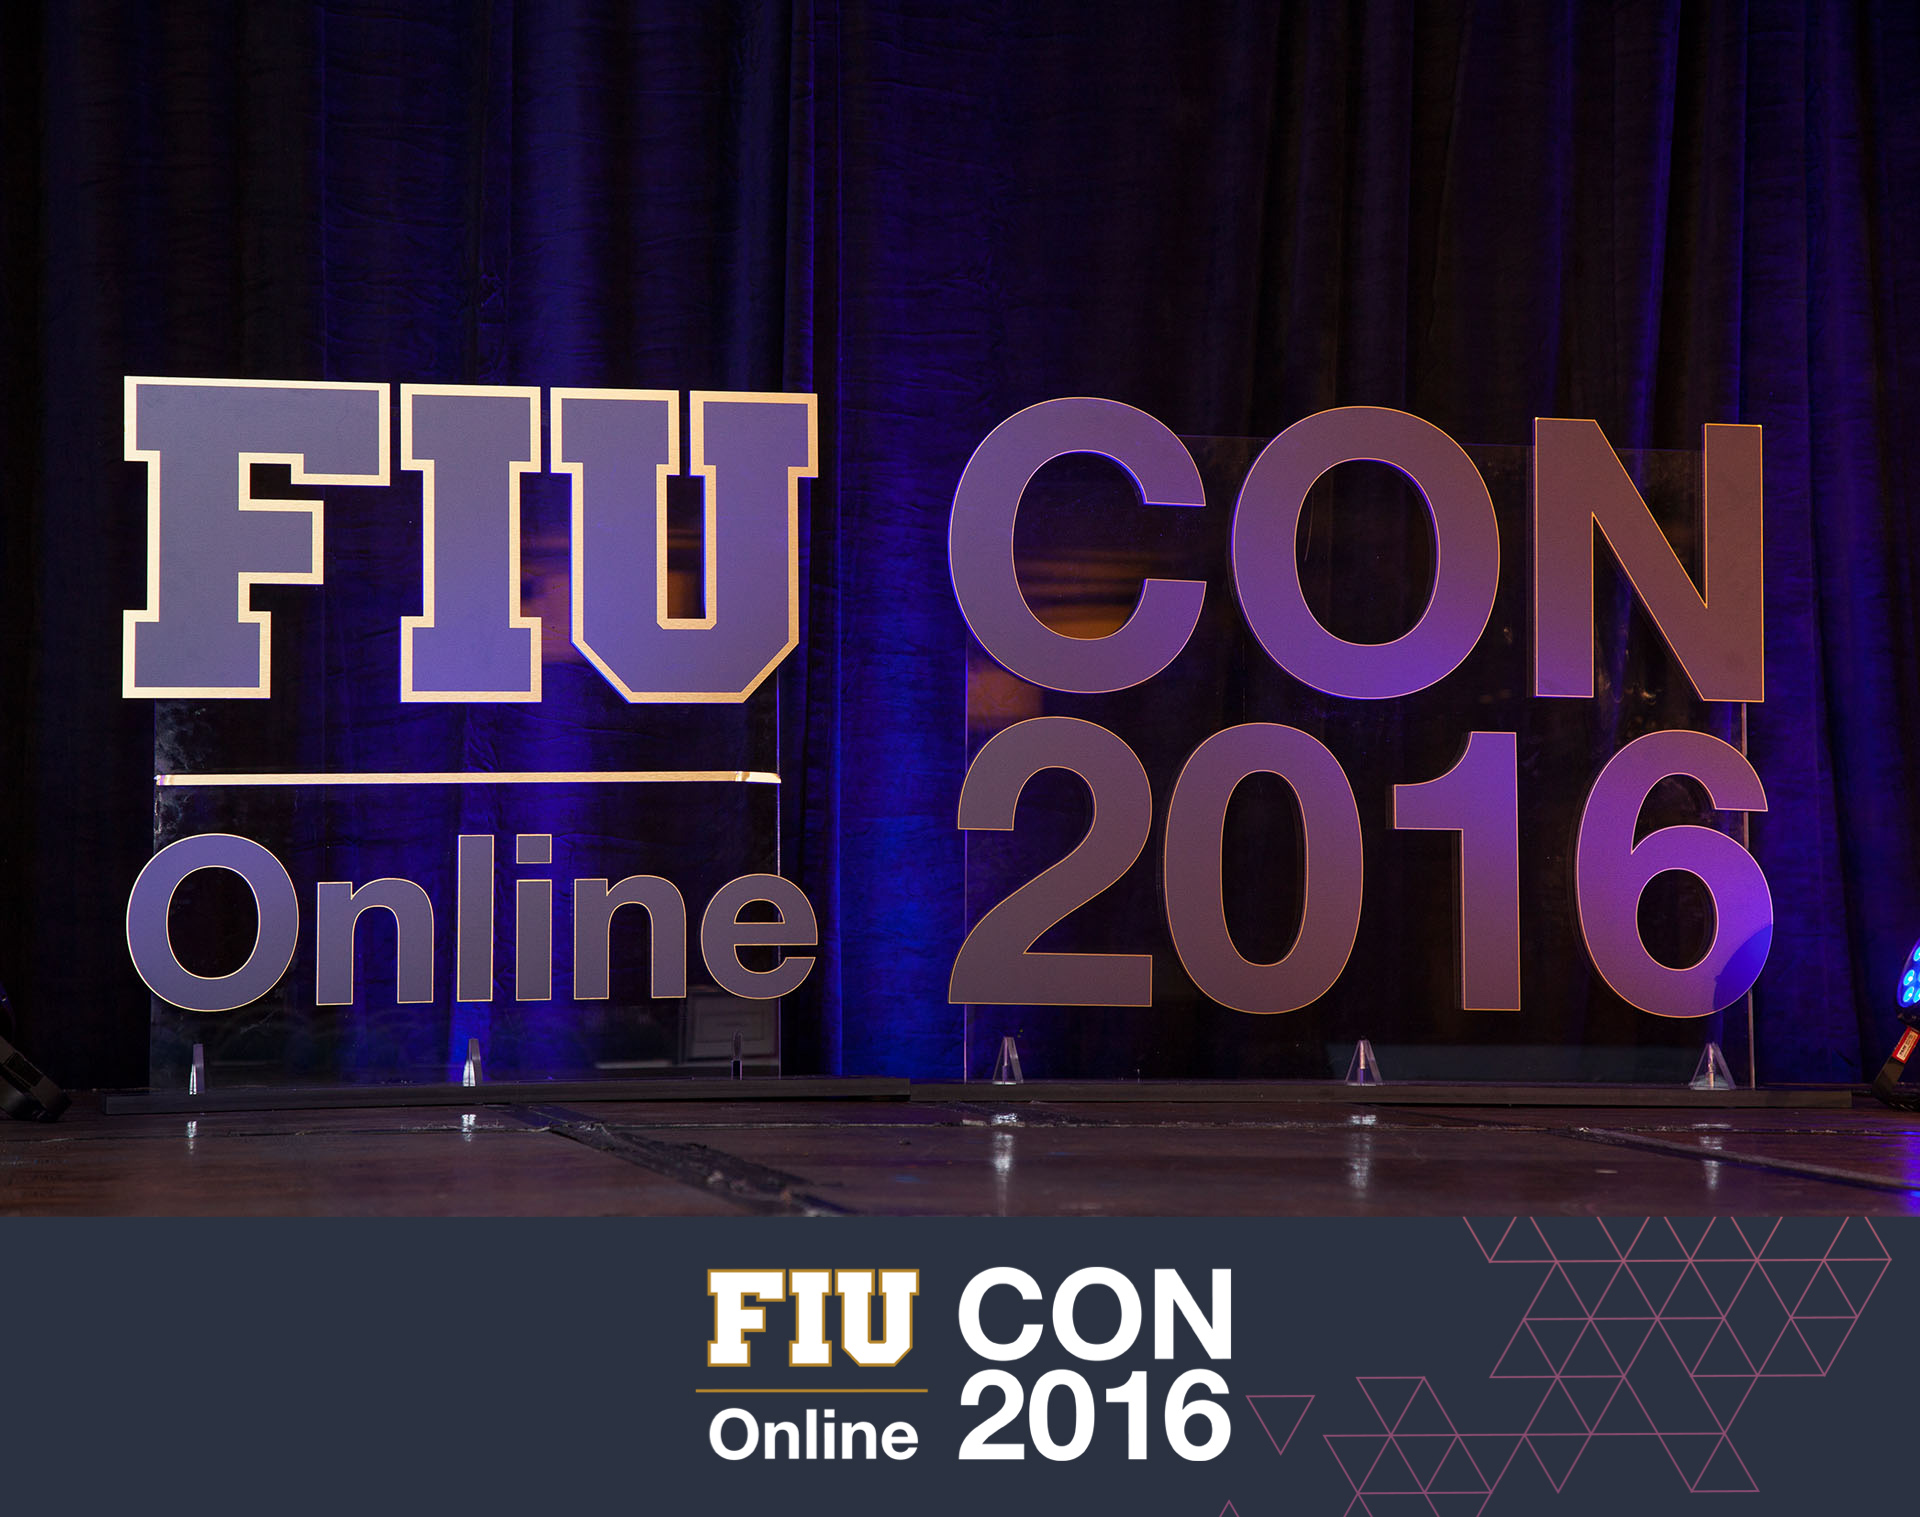 1.jpg FIU Online conference photos